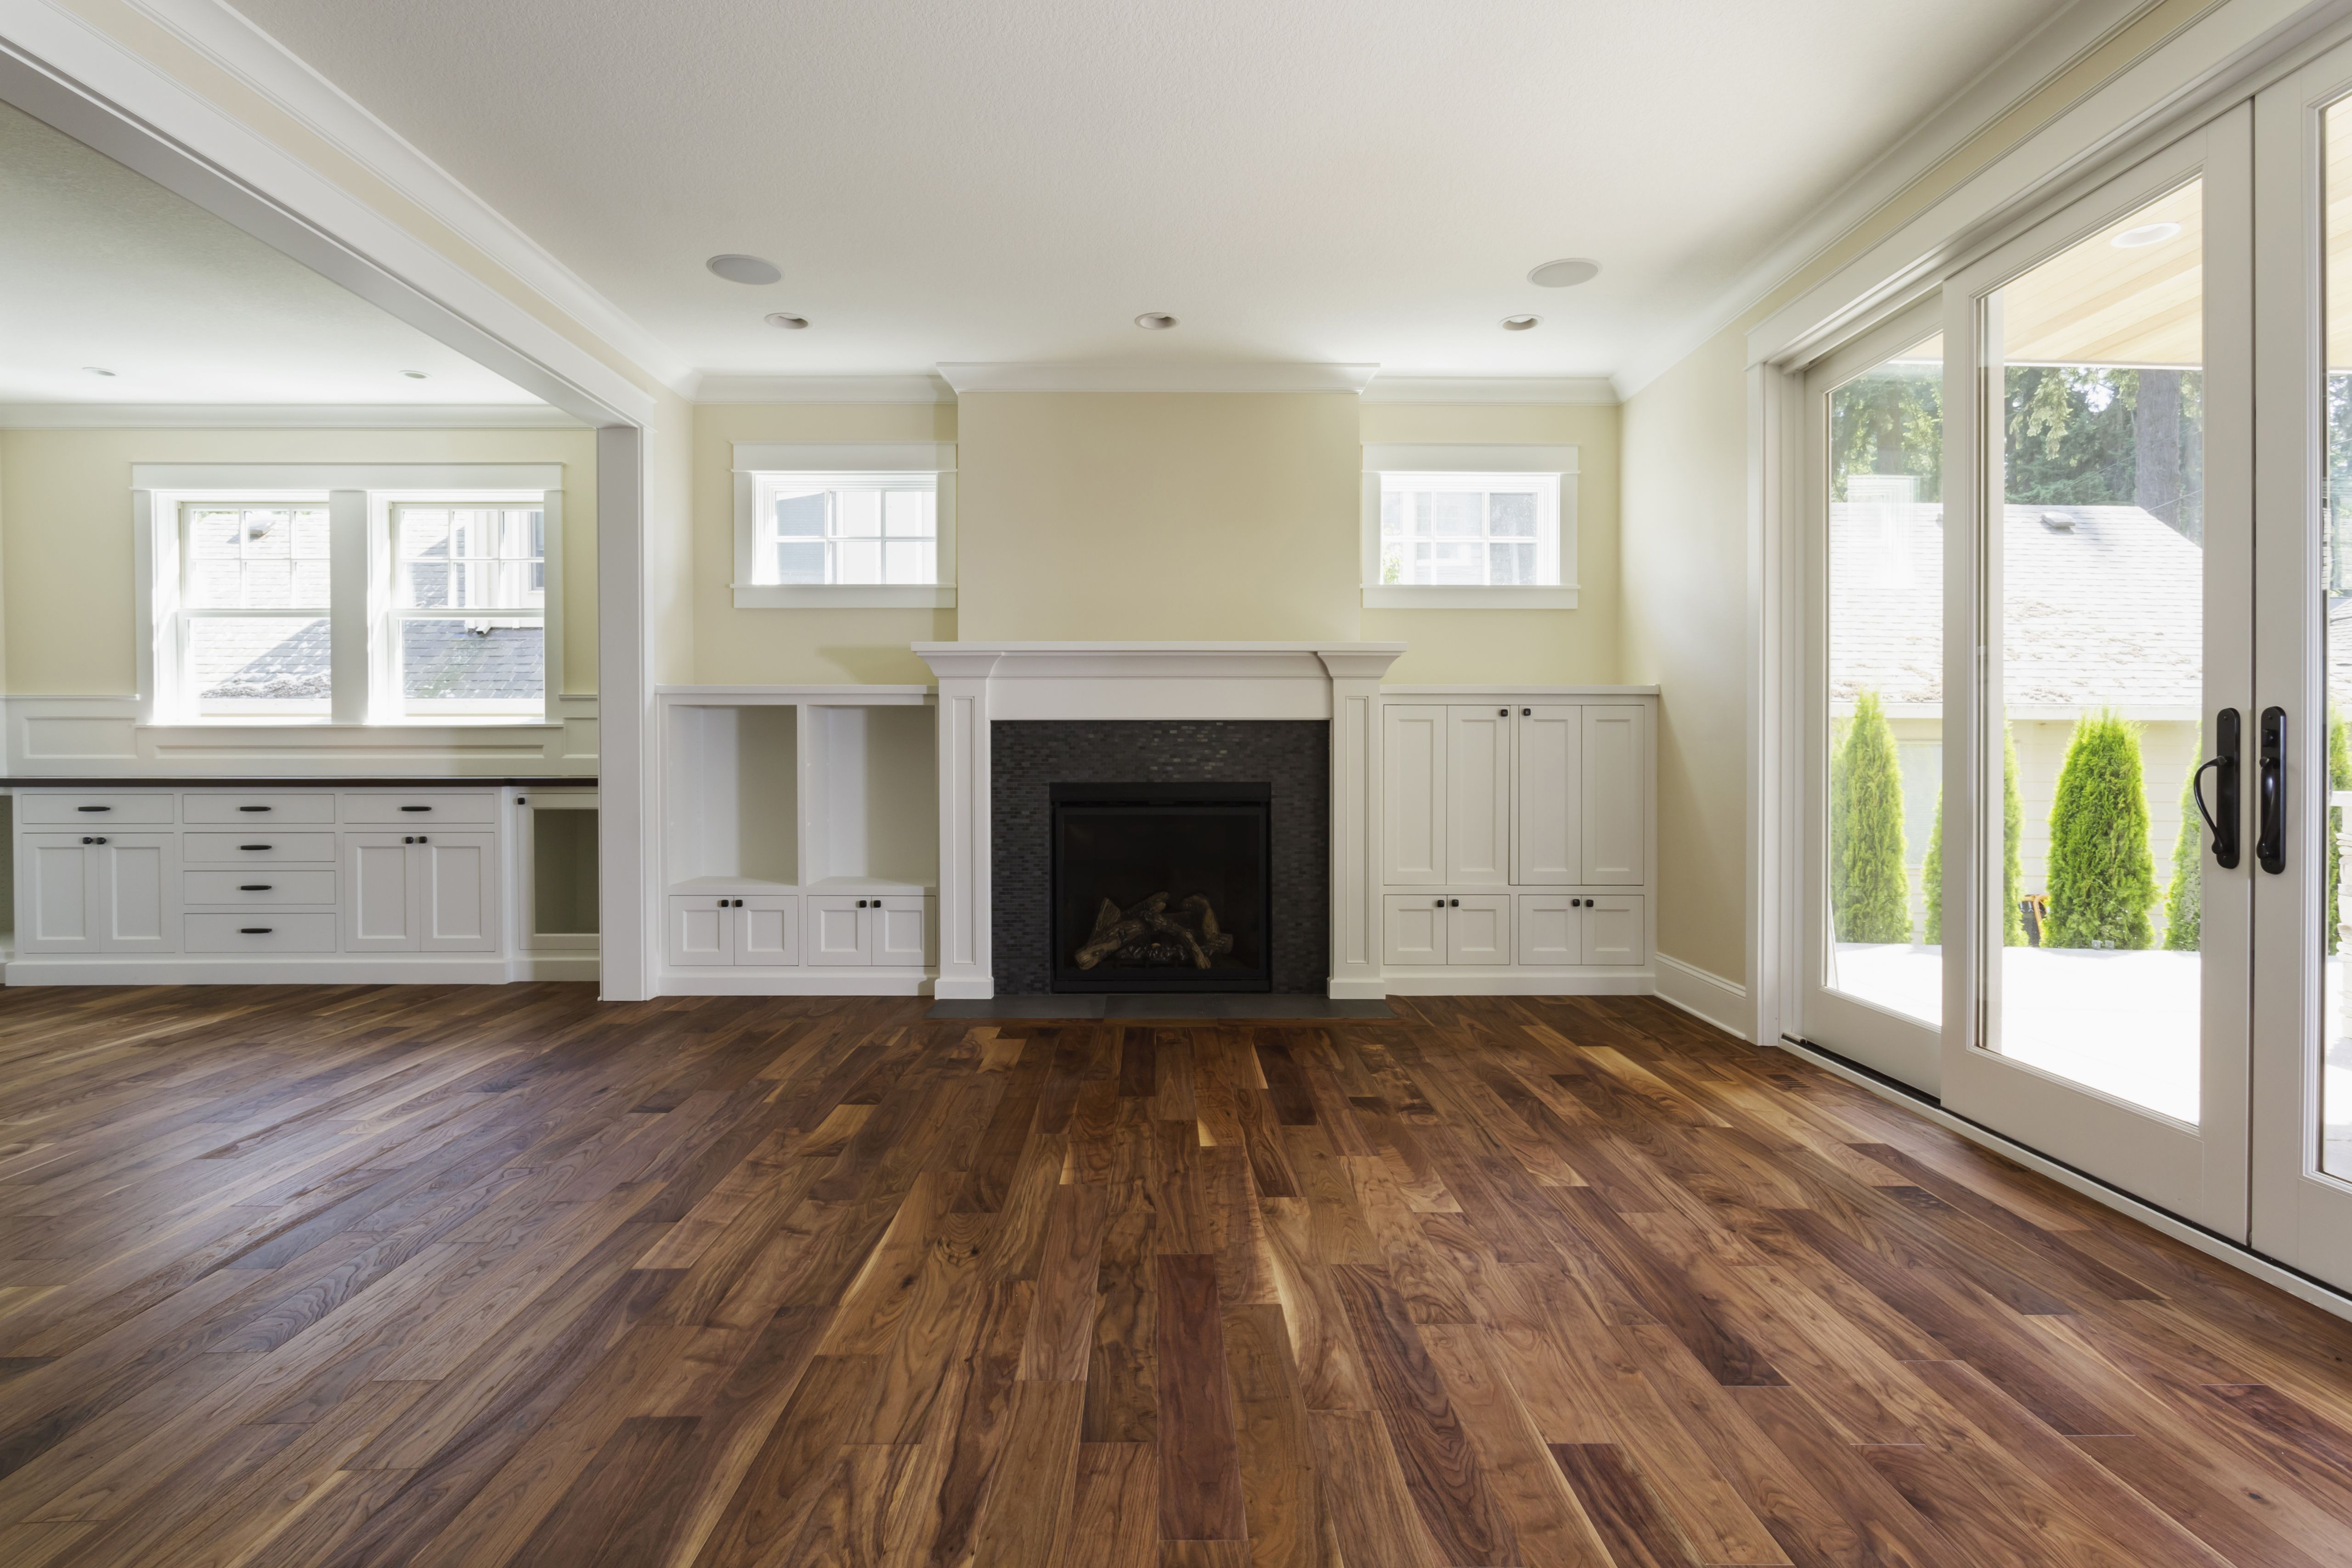 how to install 3 4 hardwood flooring of the pros and cons of prefinished hardwood flooring inside fireplace and built in shelves in living room 482143011 57bef8e33df78cc16e035397